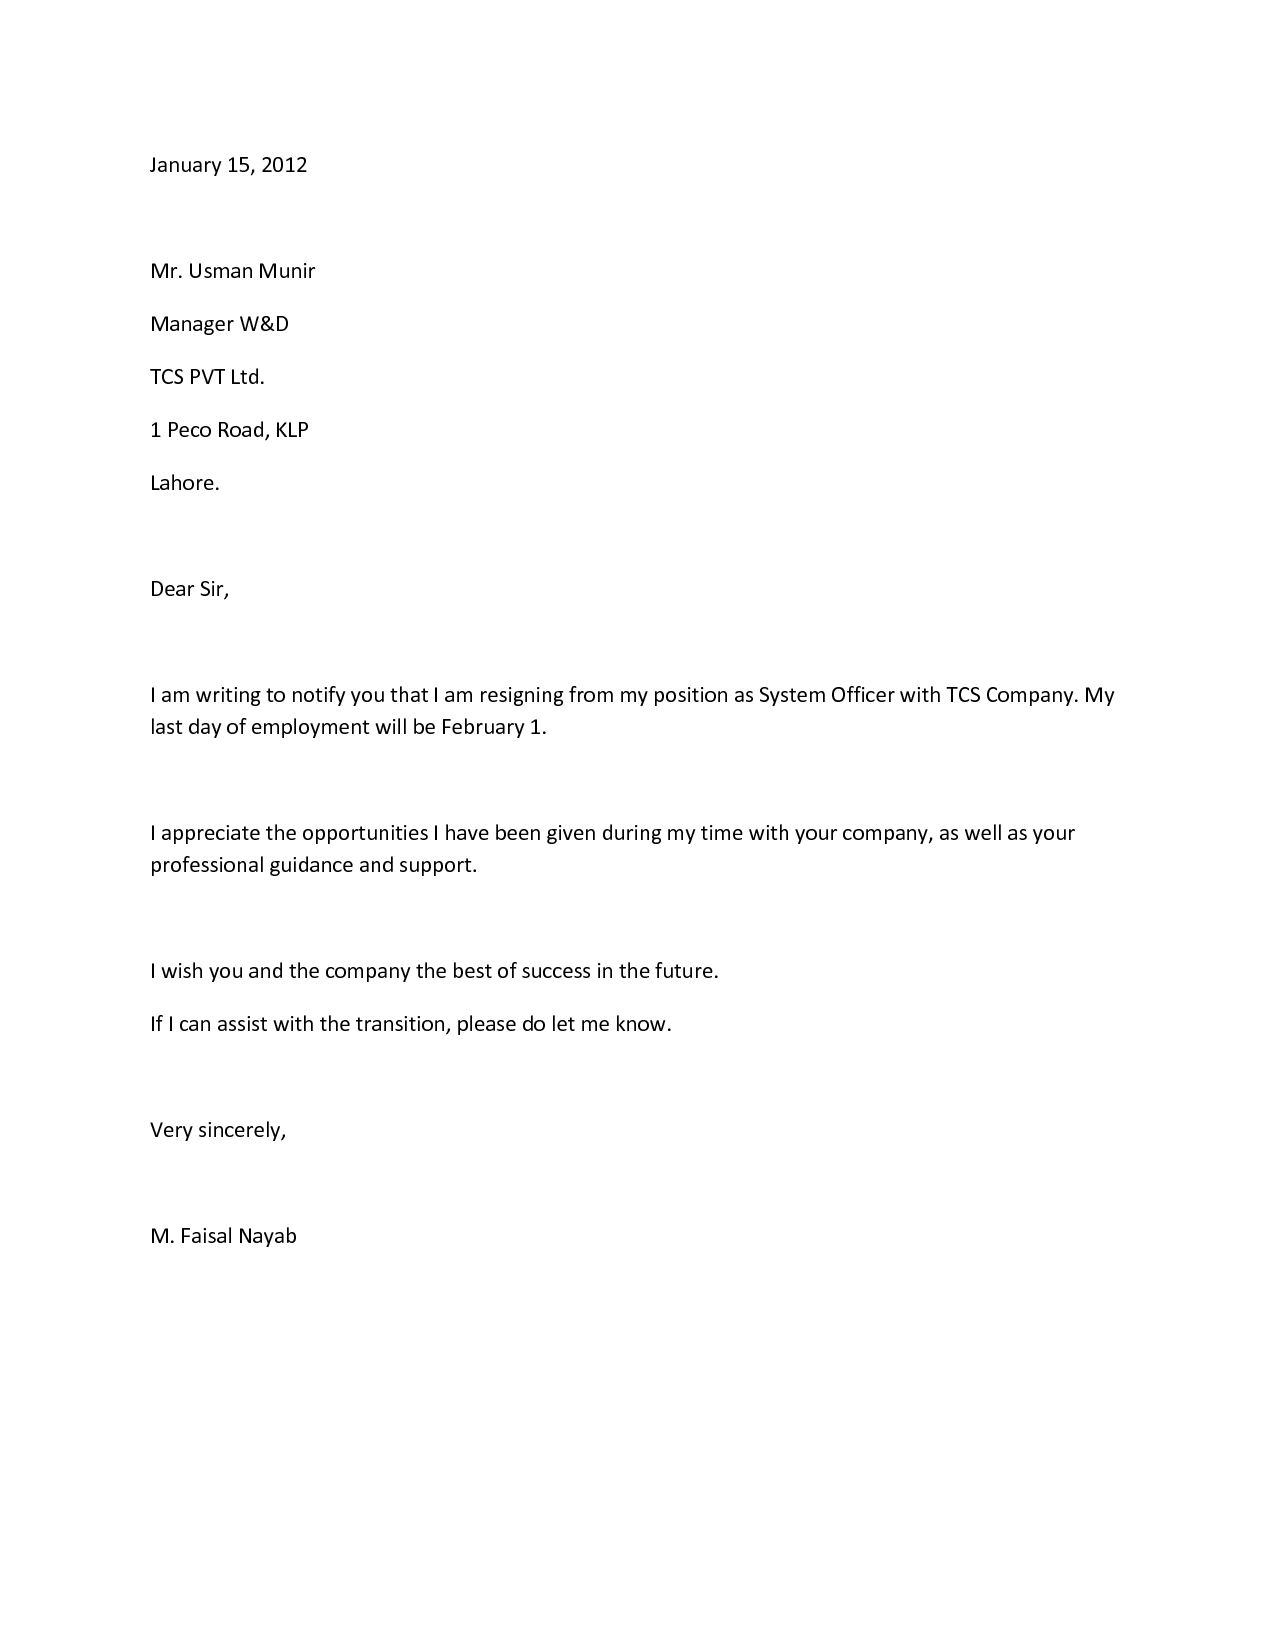 how do you write a good resignation letter writing a good profile resignation letter example two resignation letter on good terms weeks